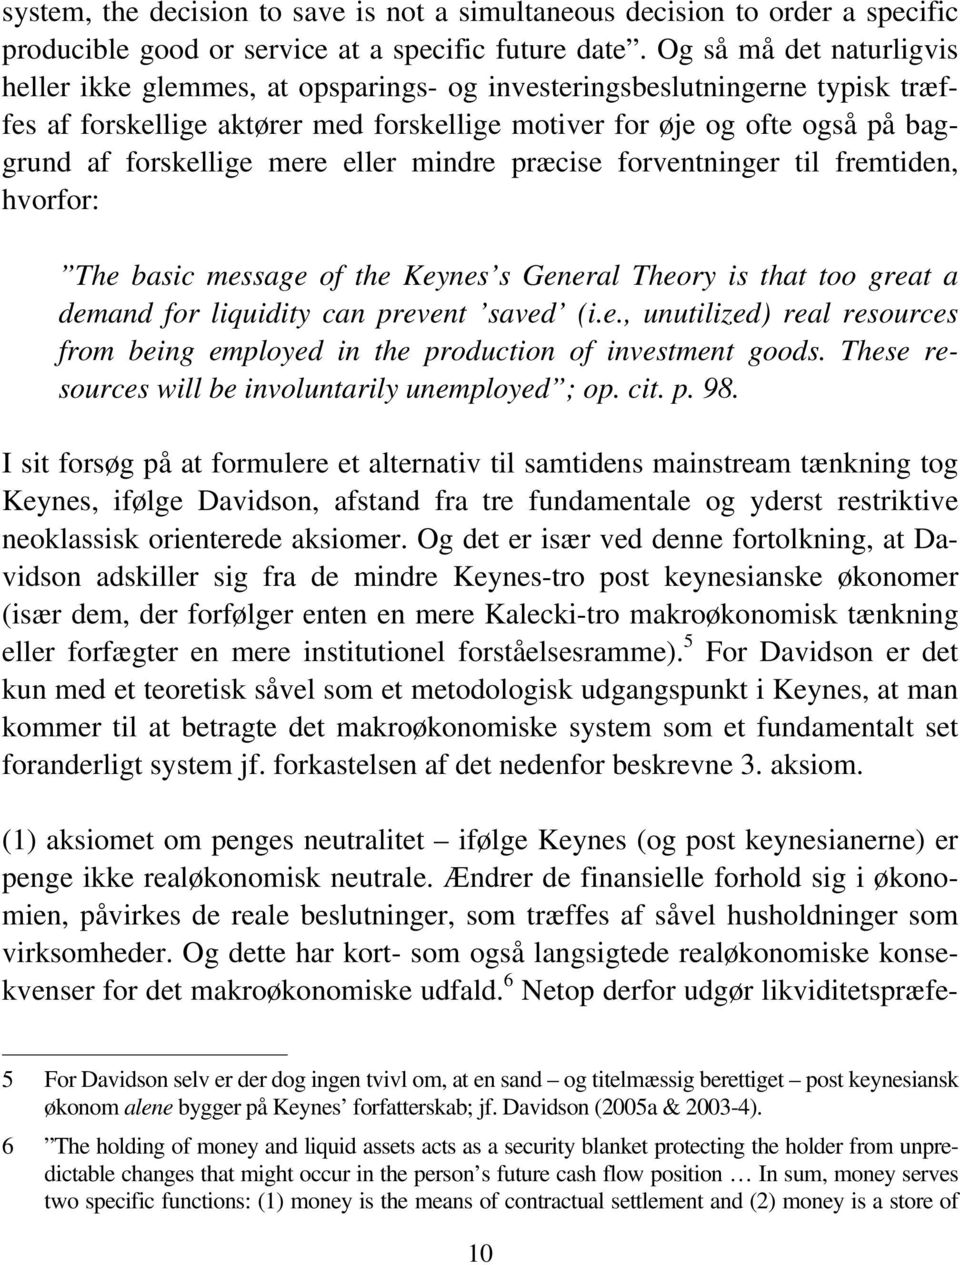 forskellige mere eller mindre præcise forventninger til fremtiden, hvorfor: The basic message of the Keynes s General Theory is that too great a demand for liquidity can prevent saved (i.e., unutilized) real resources from being employed in the production of investment goods.